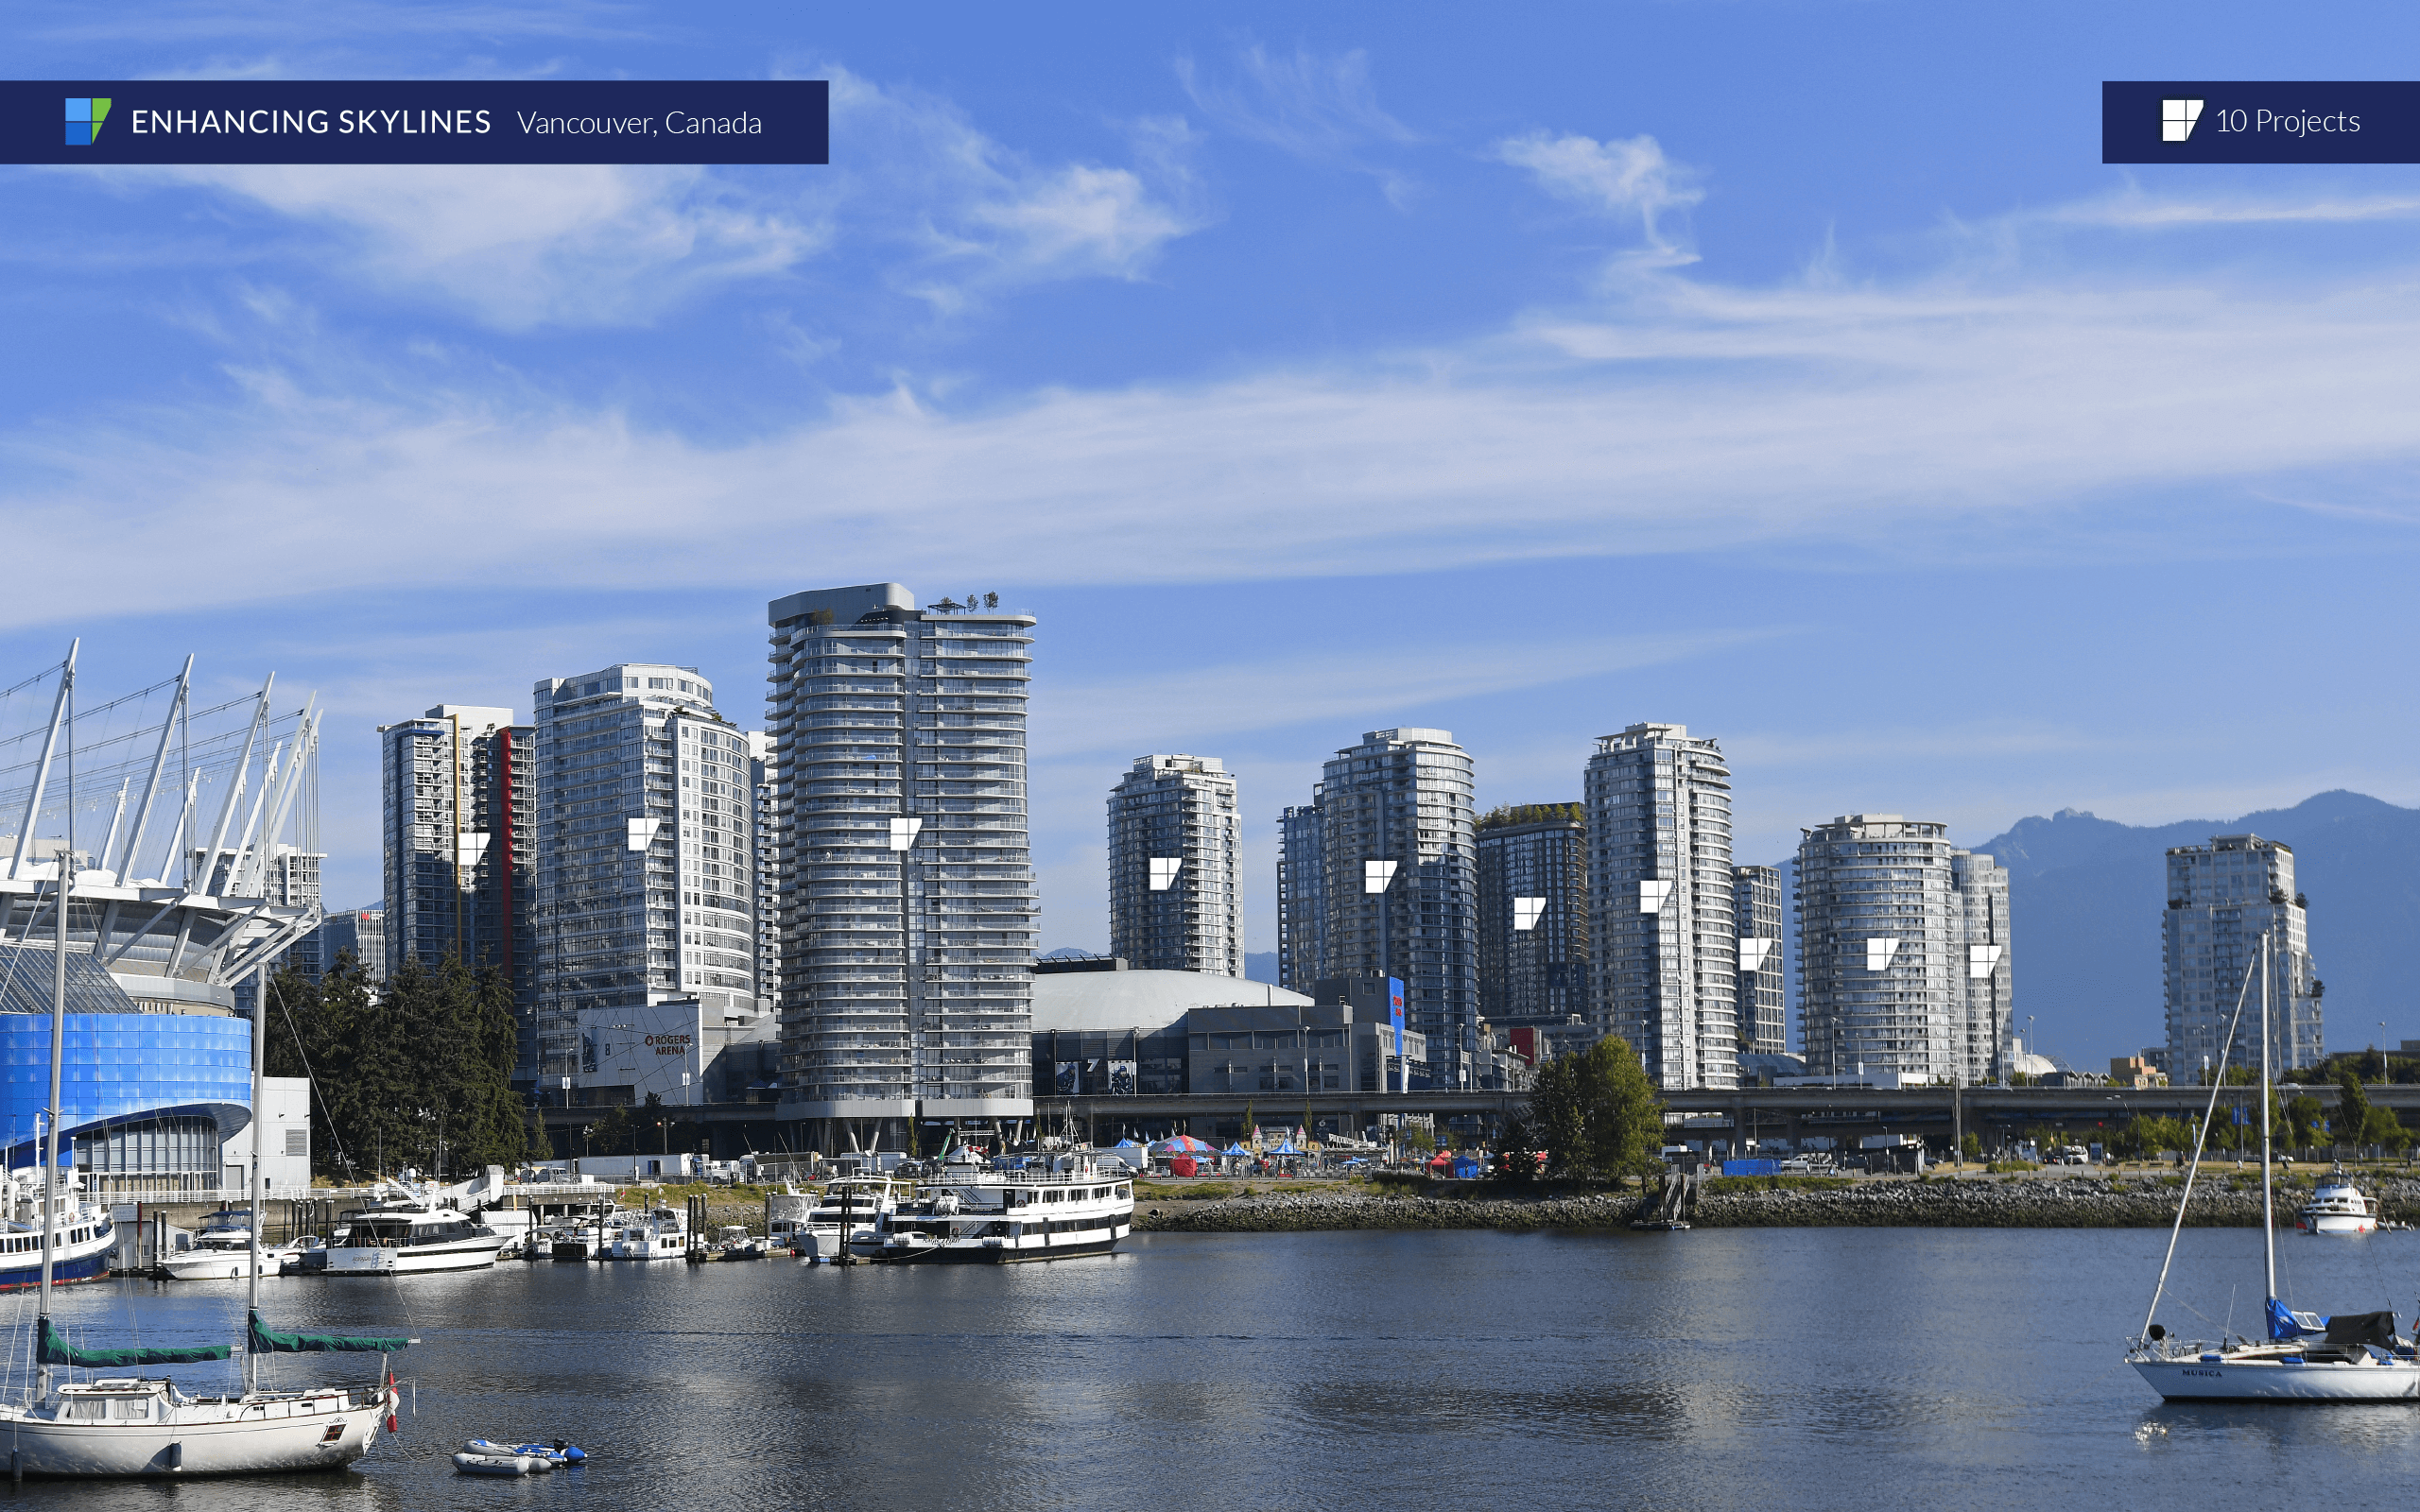 Vancouver Skyline with BVGlazing Systems building